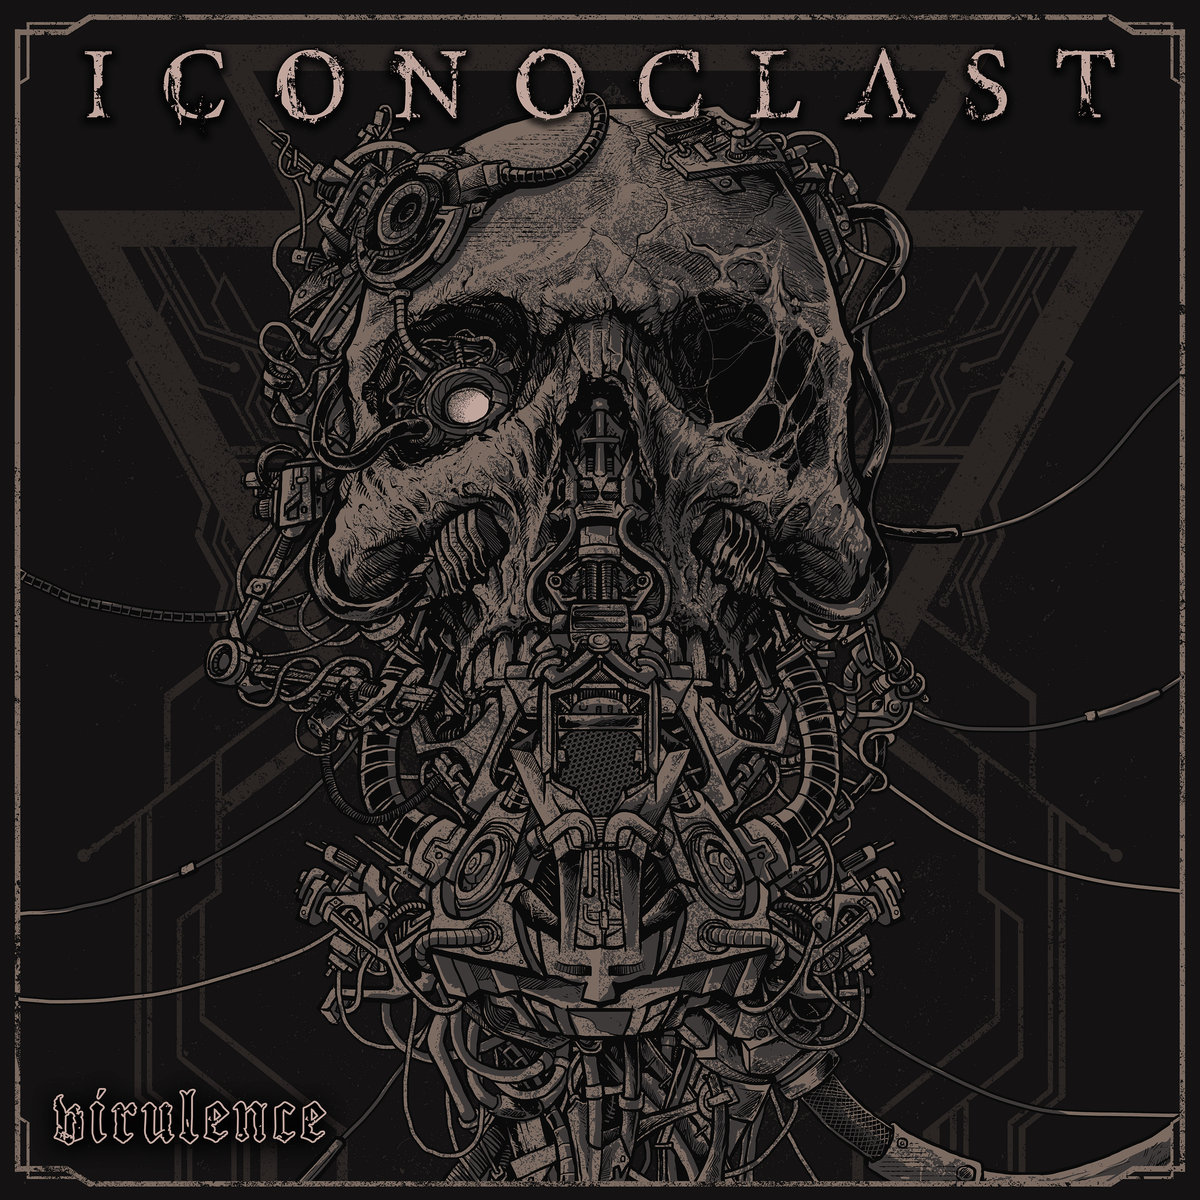 Iconoclast - Virulence [single] (2018)